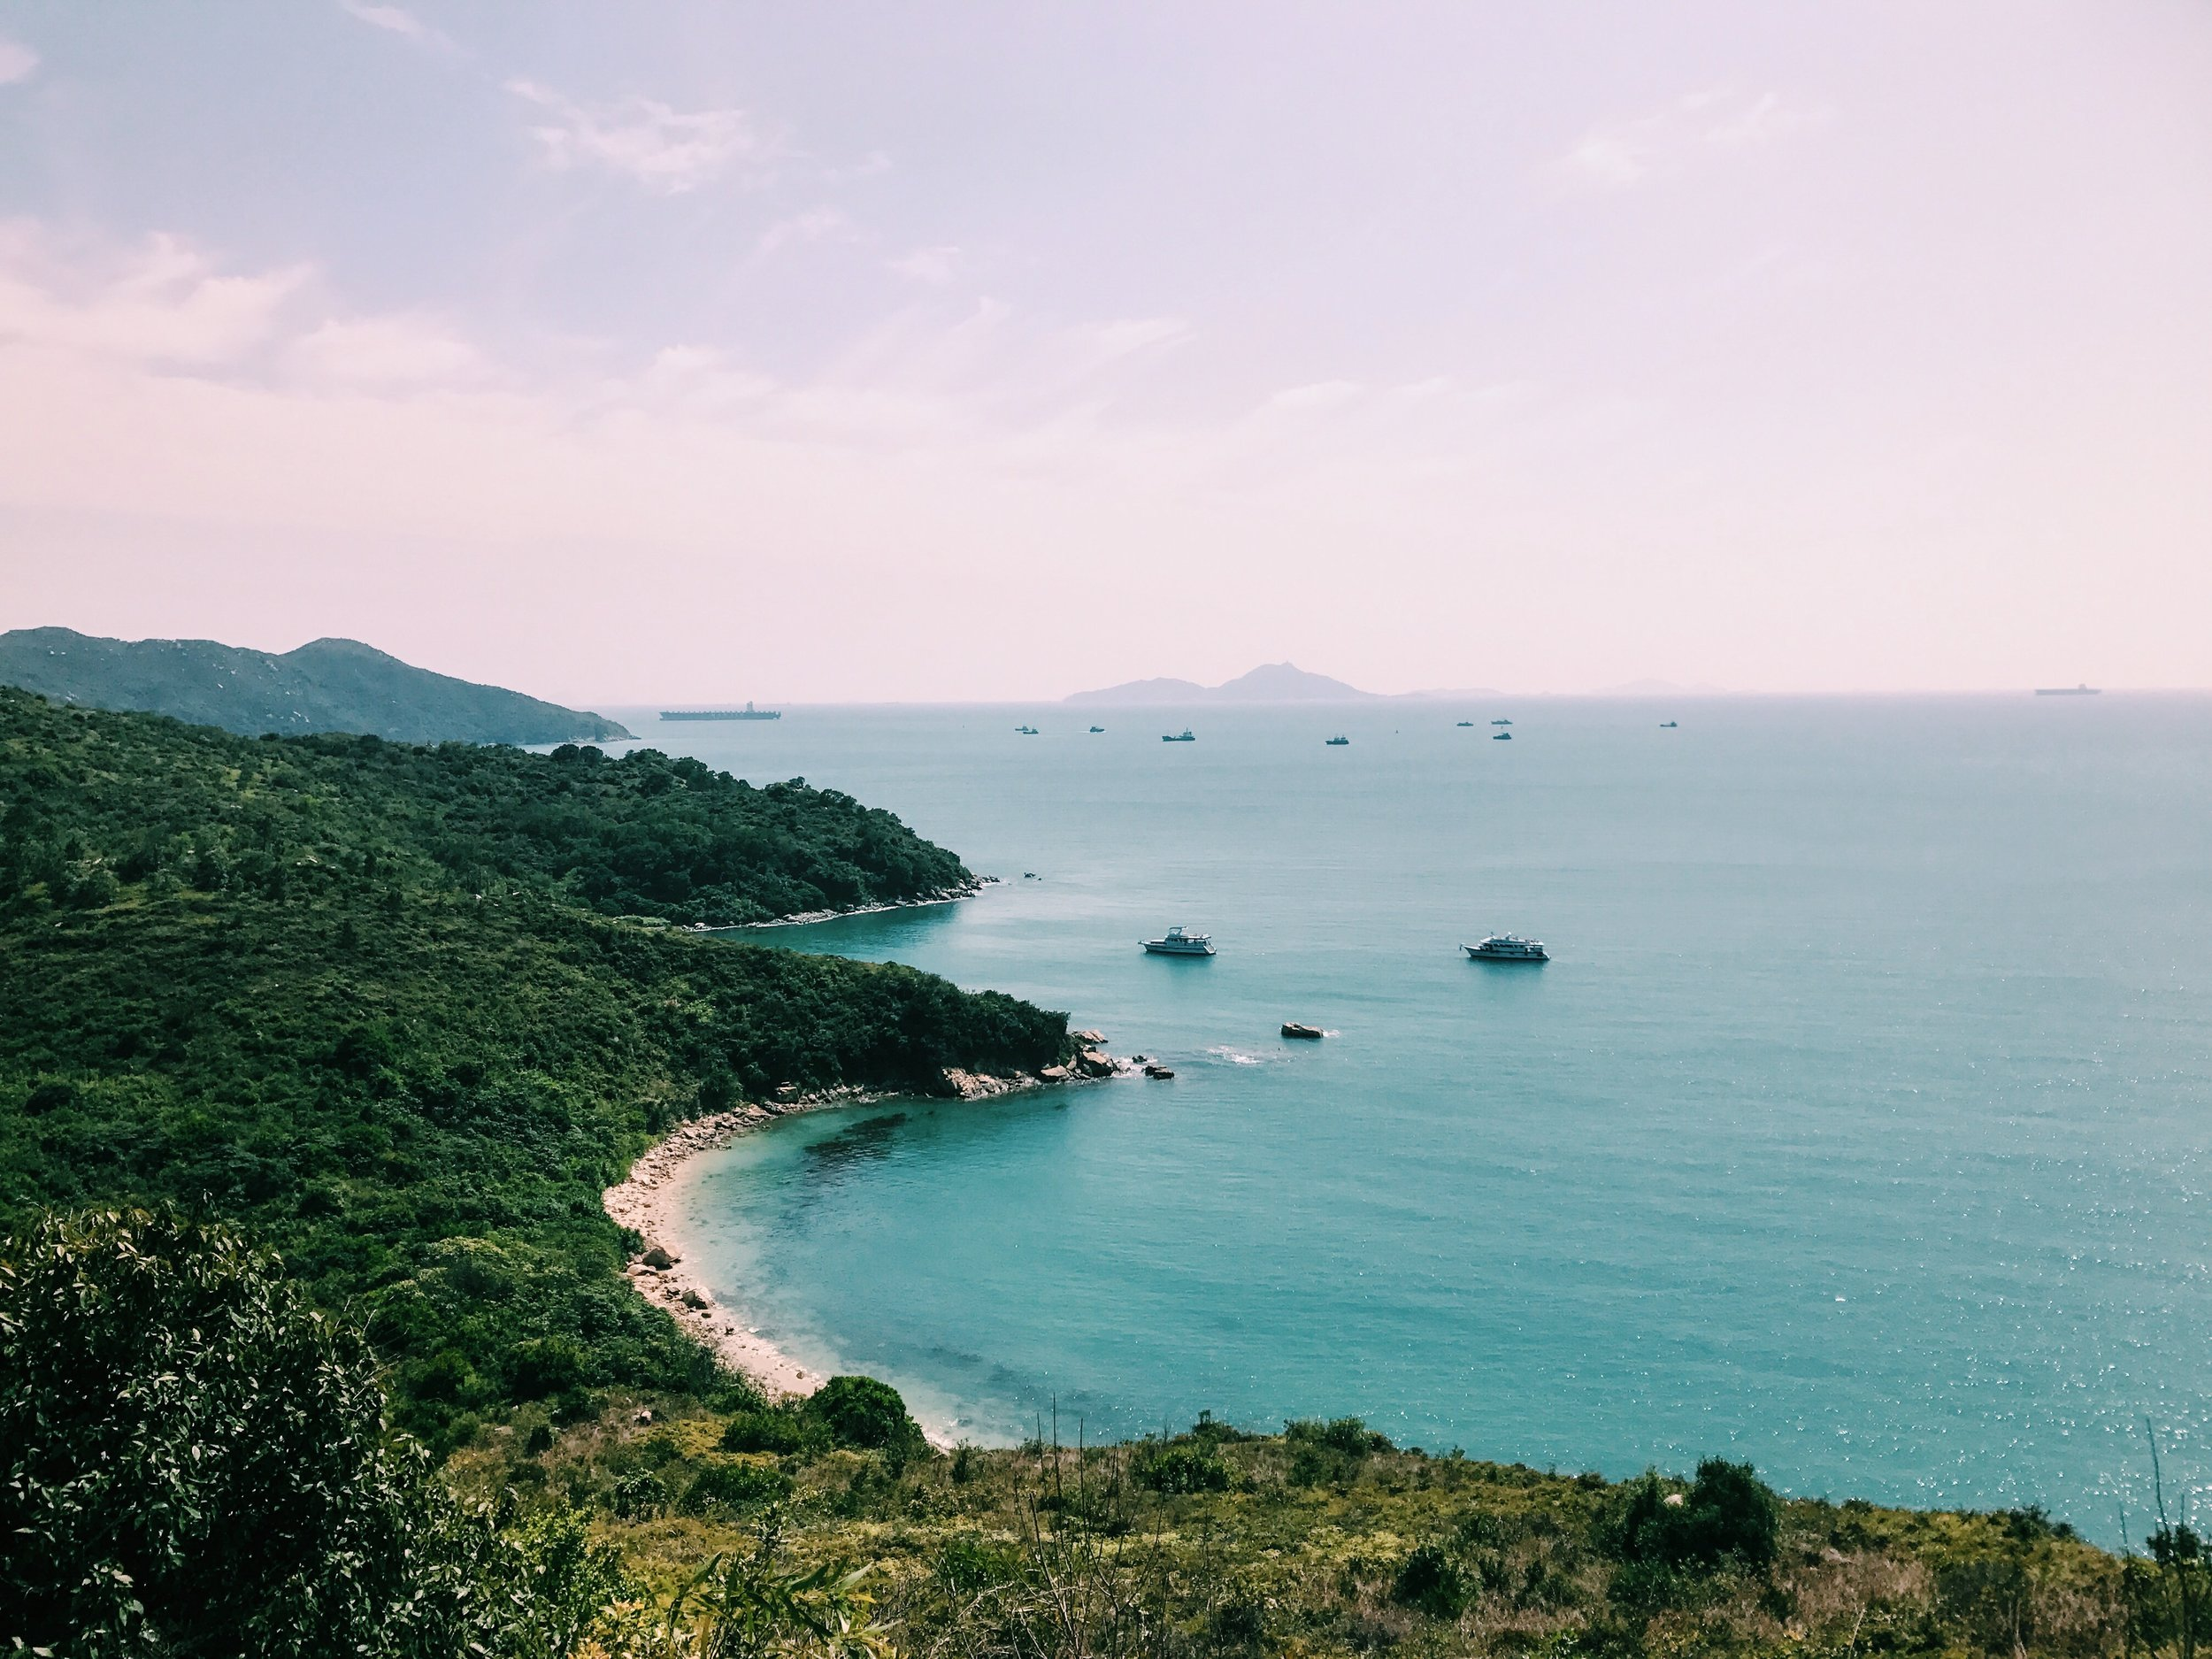 view from the Lamma Island trail